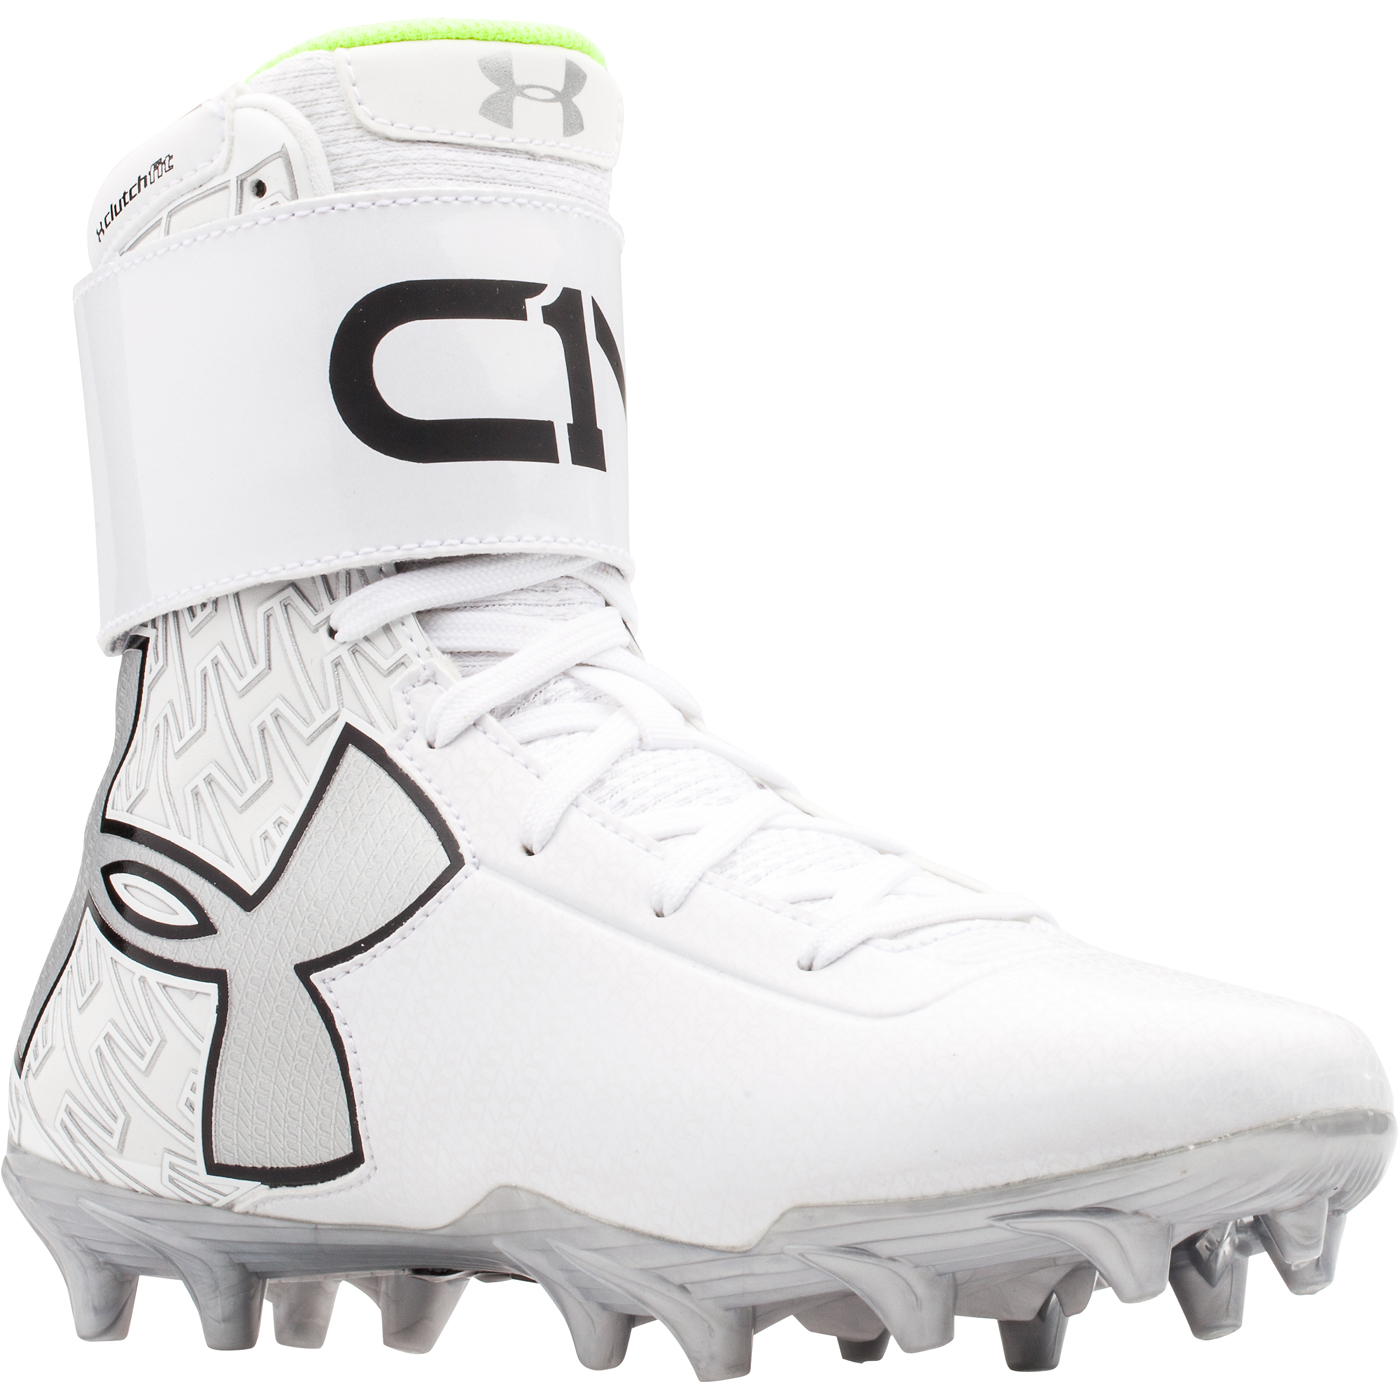 kids under armour cleats football